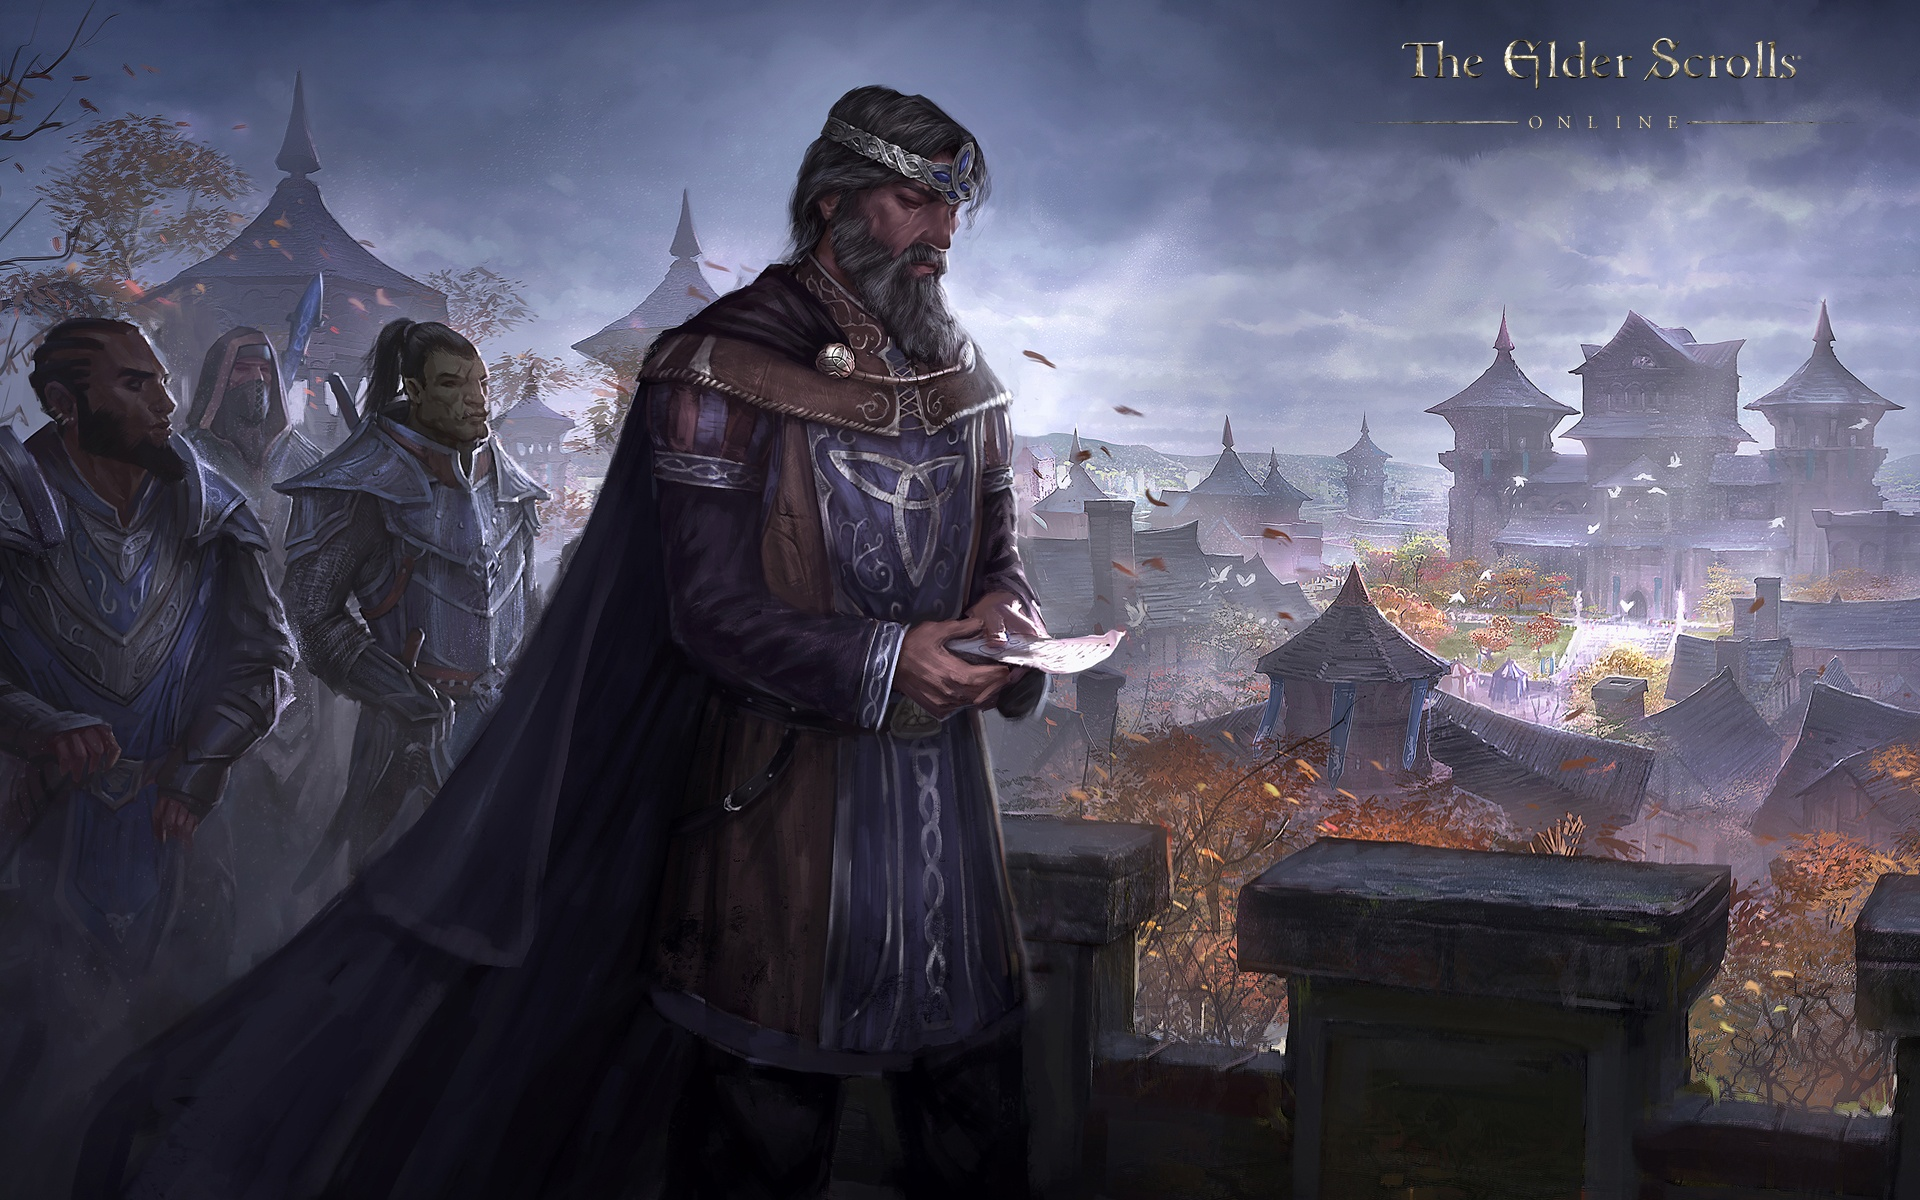 The Elder Scrolls Online Wallpaper 10 Wallpapersbq